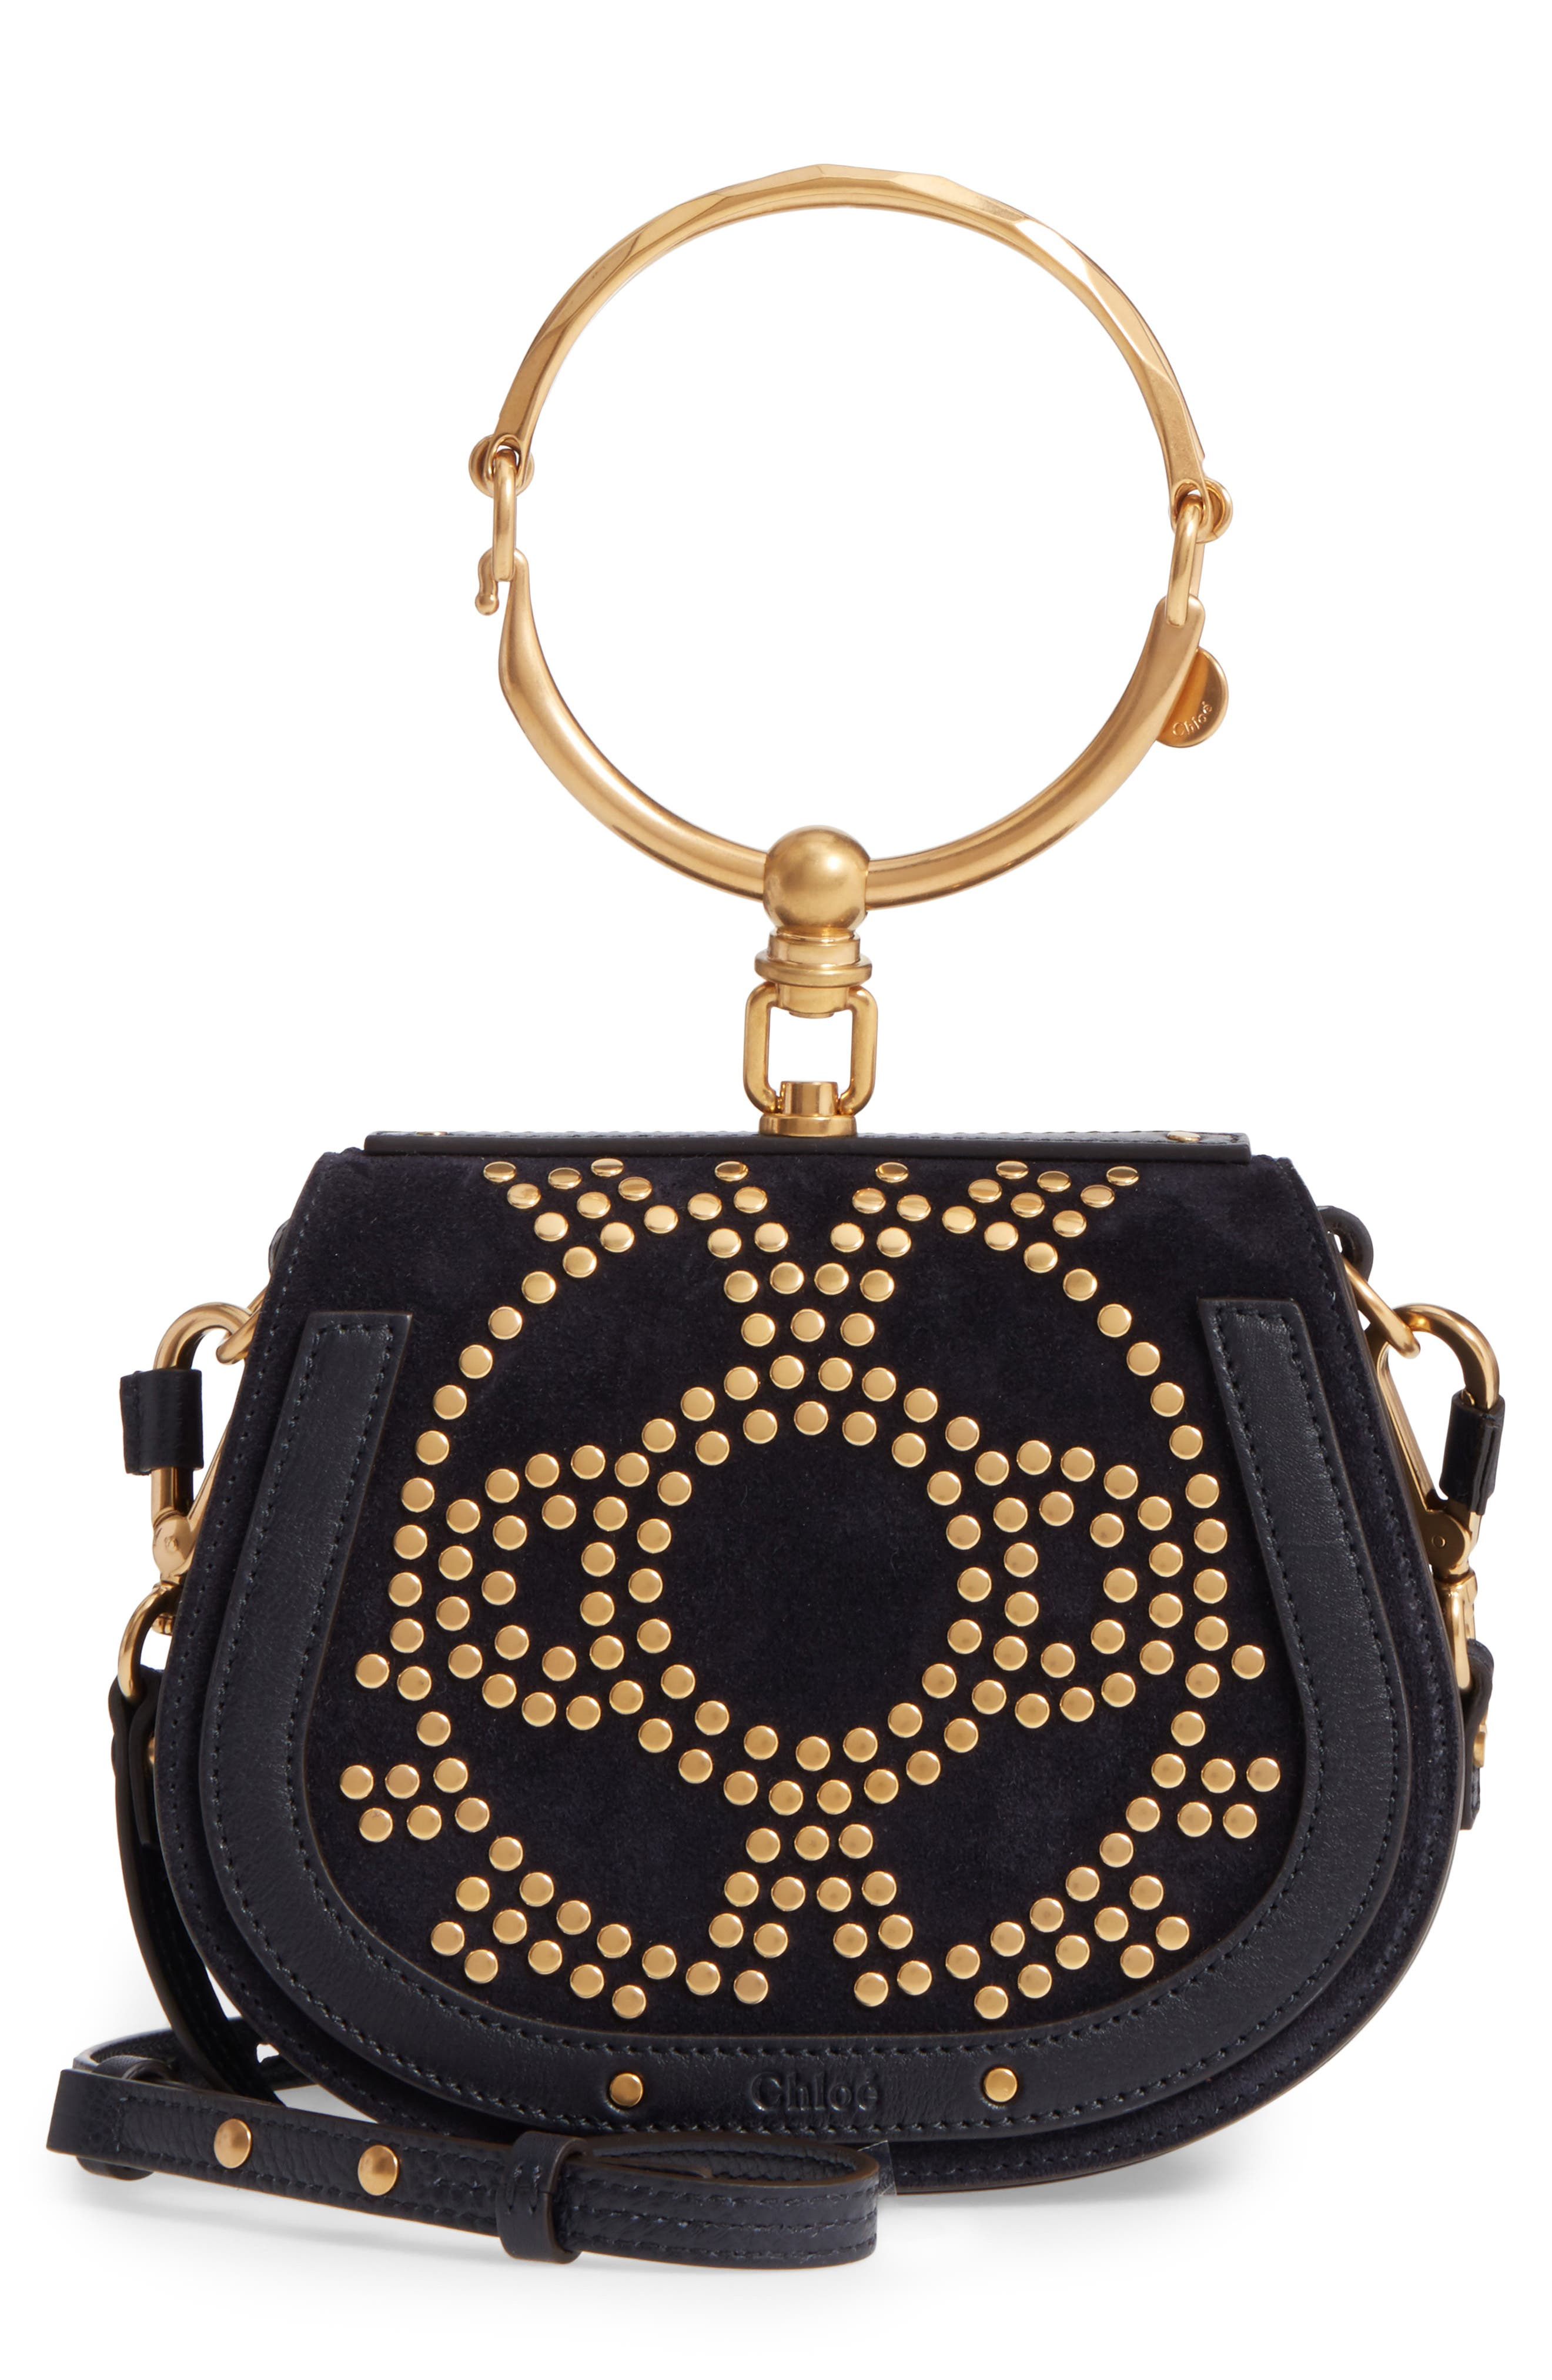 Alternate Image 1 Selected - Chloé Small Nile Bracelet Studded Leather Crossbody Bag